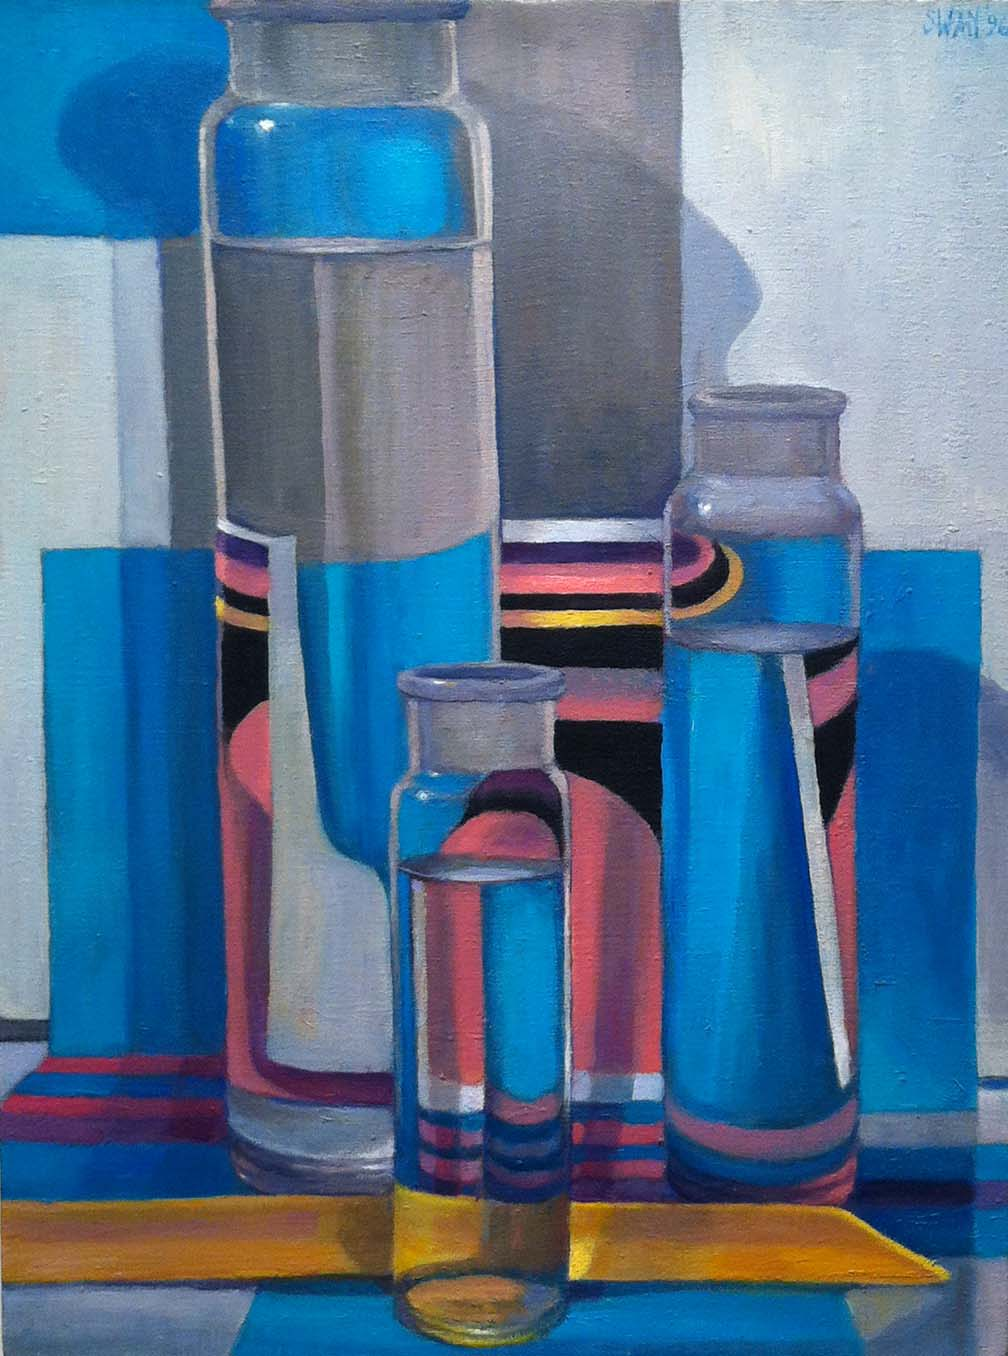 untitled, 1996 oil on canvas, 24 x 18 inches